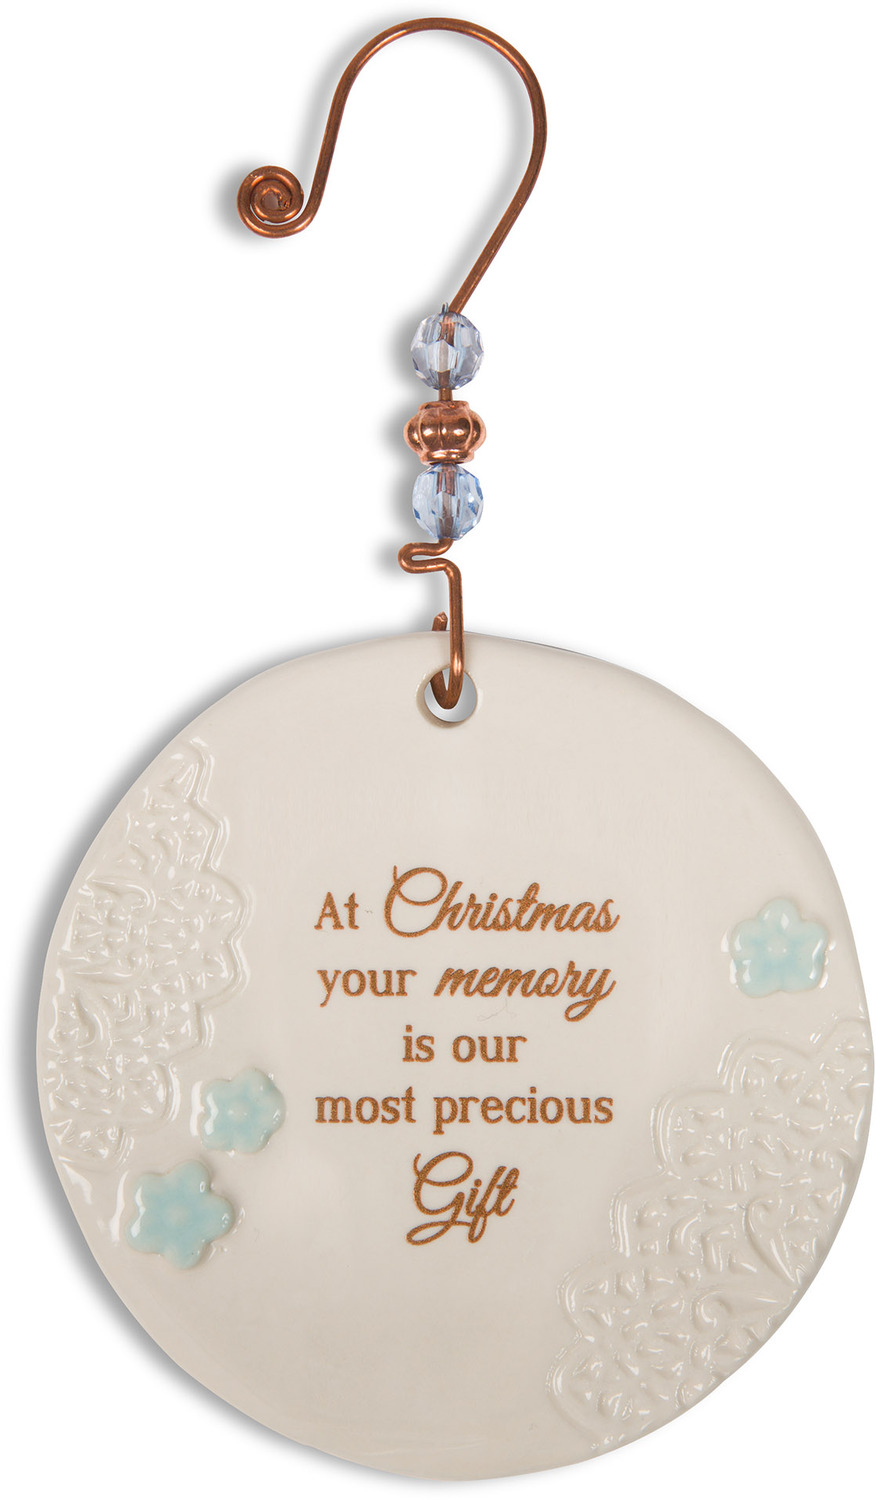 Christmas memories 3 5 ceramic ornament light your way - Ornament tapete weiay ...